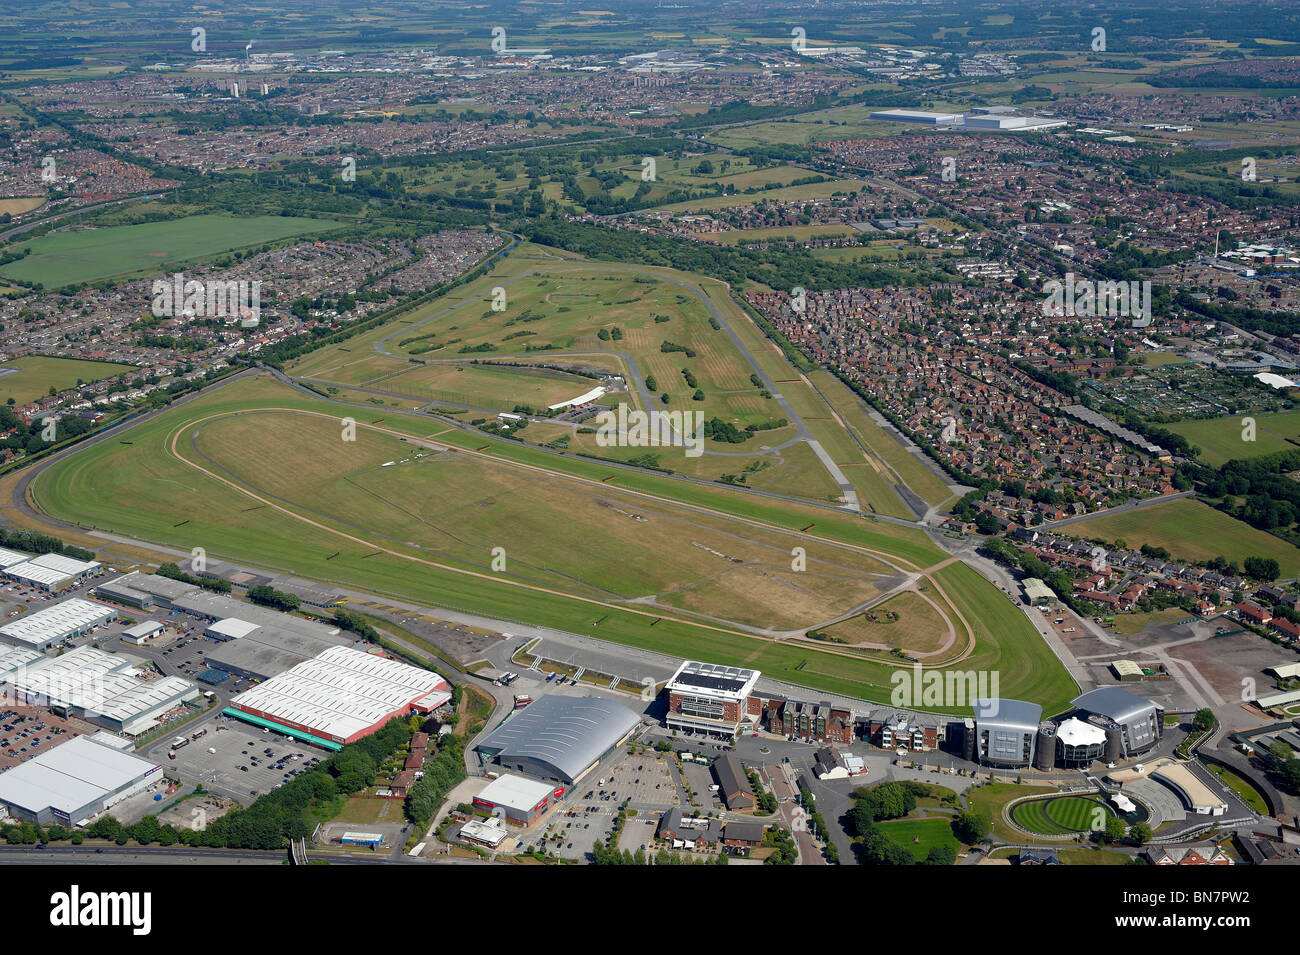 Aintree Racecourse, home of the Grand National, Liverpool, North West England Stock Photo